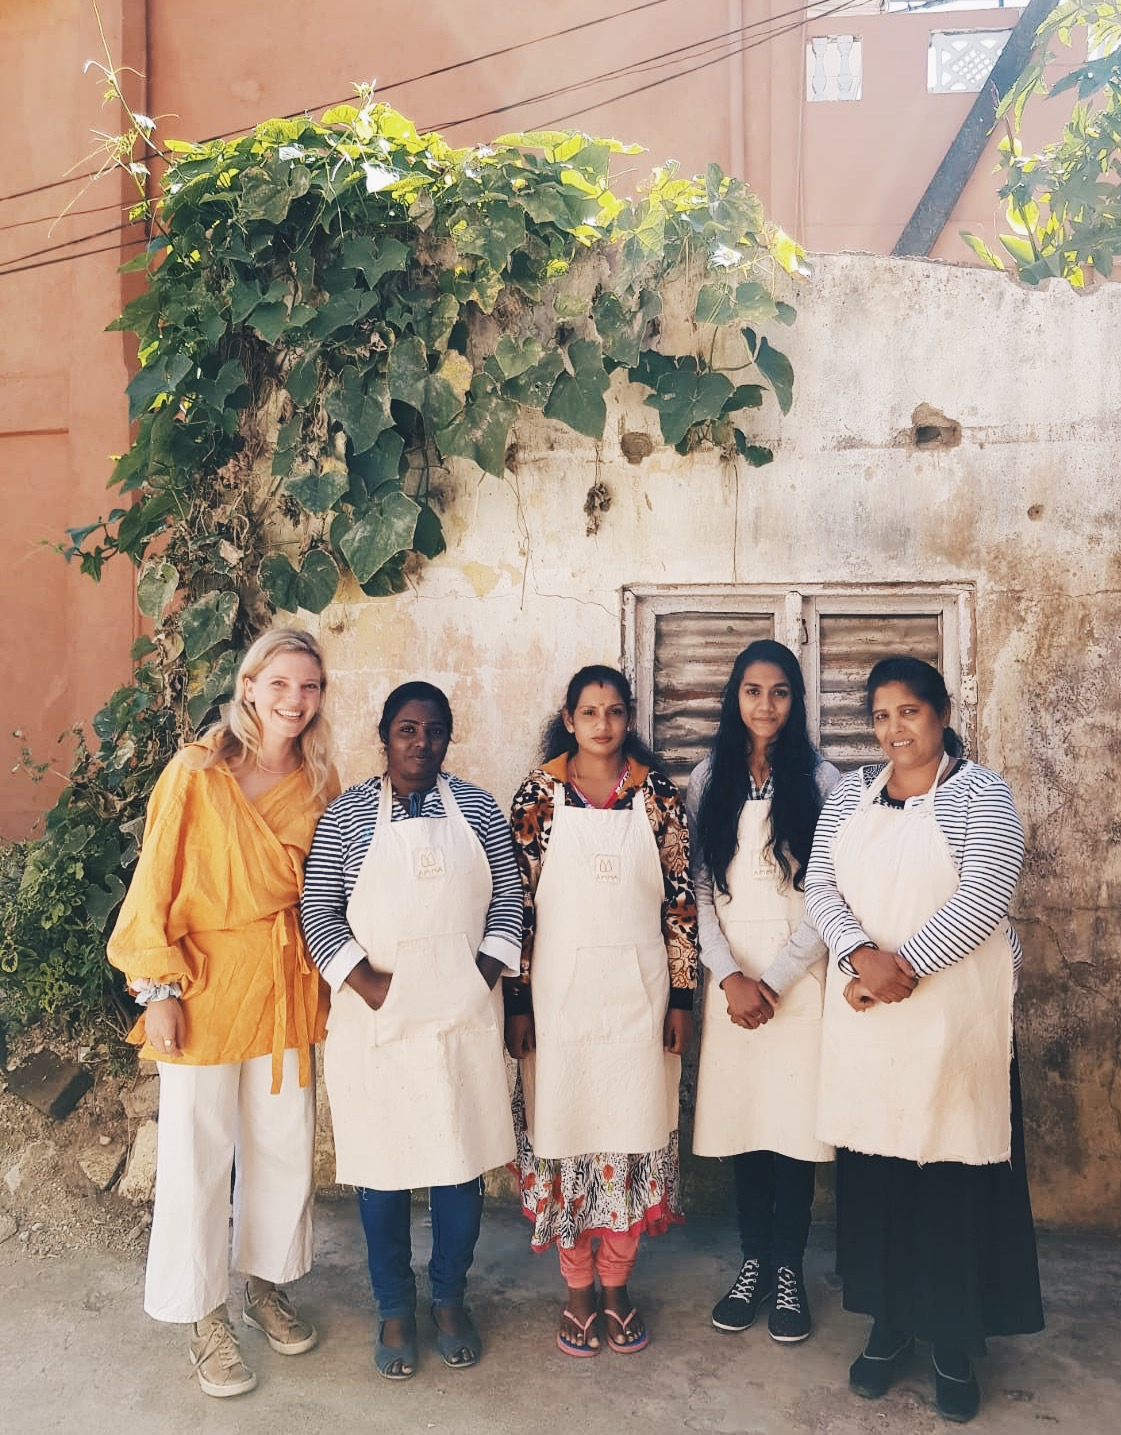 AMMA SRI LANKA - We were so excited to finally meet the women behind Amma, the social enterprise that trains and employs mothers living in the Sri Lankan highlands to turn food waste and plants into natural dyes creating sustainable textiles, ethically handmade. Amma is run by the lovely Josie, who we have been collaborating with for the last 1.5 years. They make our not-for-profit avocado waste dyed aprons, and the lovely bright turmeric waste dyed pouches that we pack our Turmeric CBD oils in.We are so grateful that the sale of our avocado aprons over Christmas 2018 meant that they were able to purchase two new sewing machines, enabling them to work on more projects.